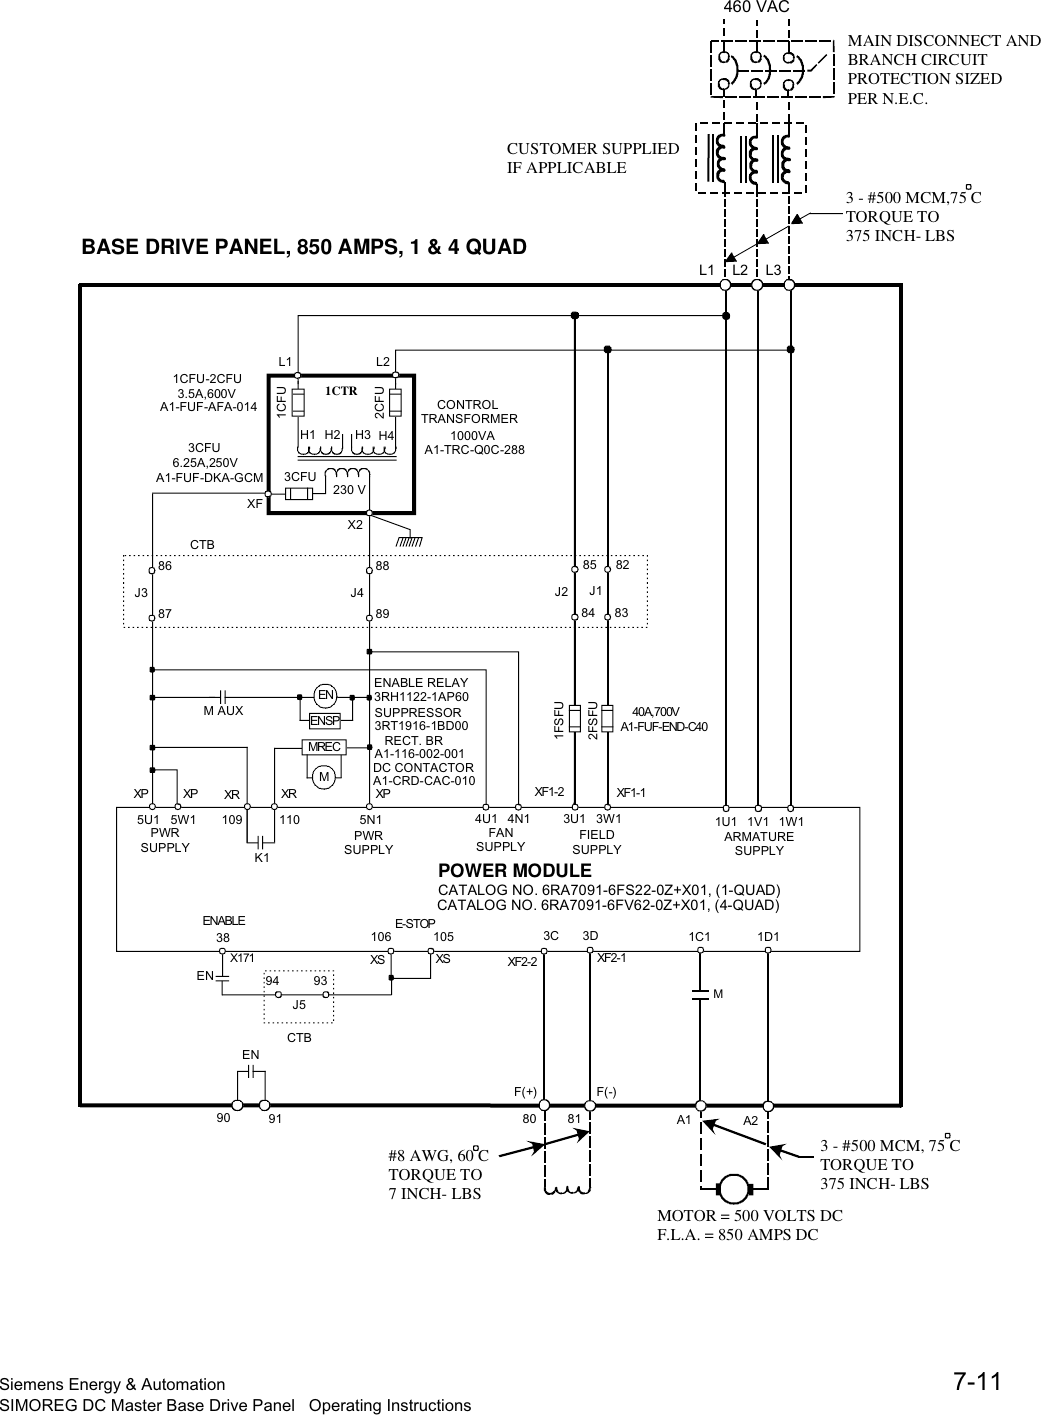 hight resolution of siemens 6ra70 users manual ch 0 cover contentswopix fo22 inverter schematic diagram sheet 3 of 3